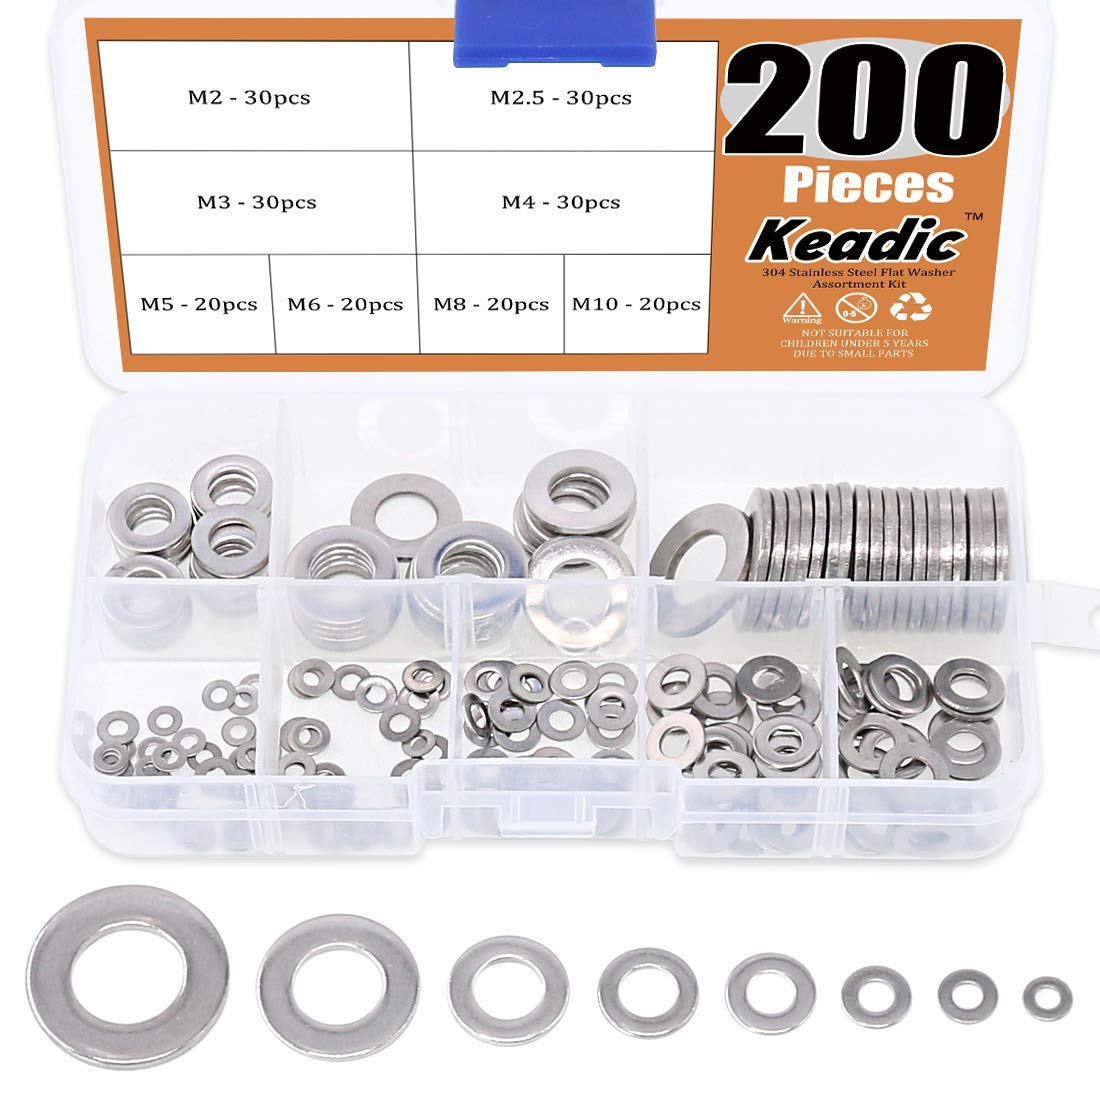 Keadic 200Pcs 8 Size Metric 304 Stainless Steel Flat Washers Kit Flat Metal Small Gasket for Home Automotive Shop Use M2 M2.5 M3 M4 M5 M6 M8 M10